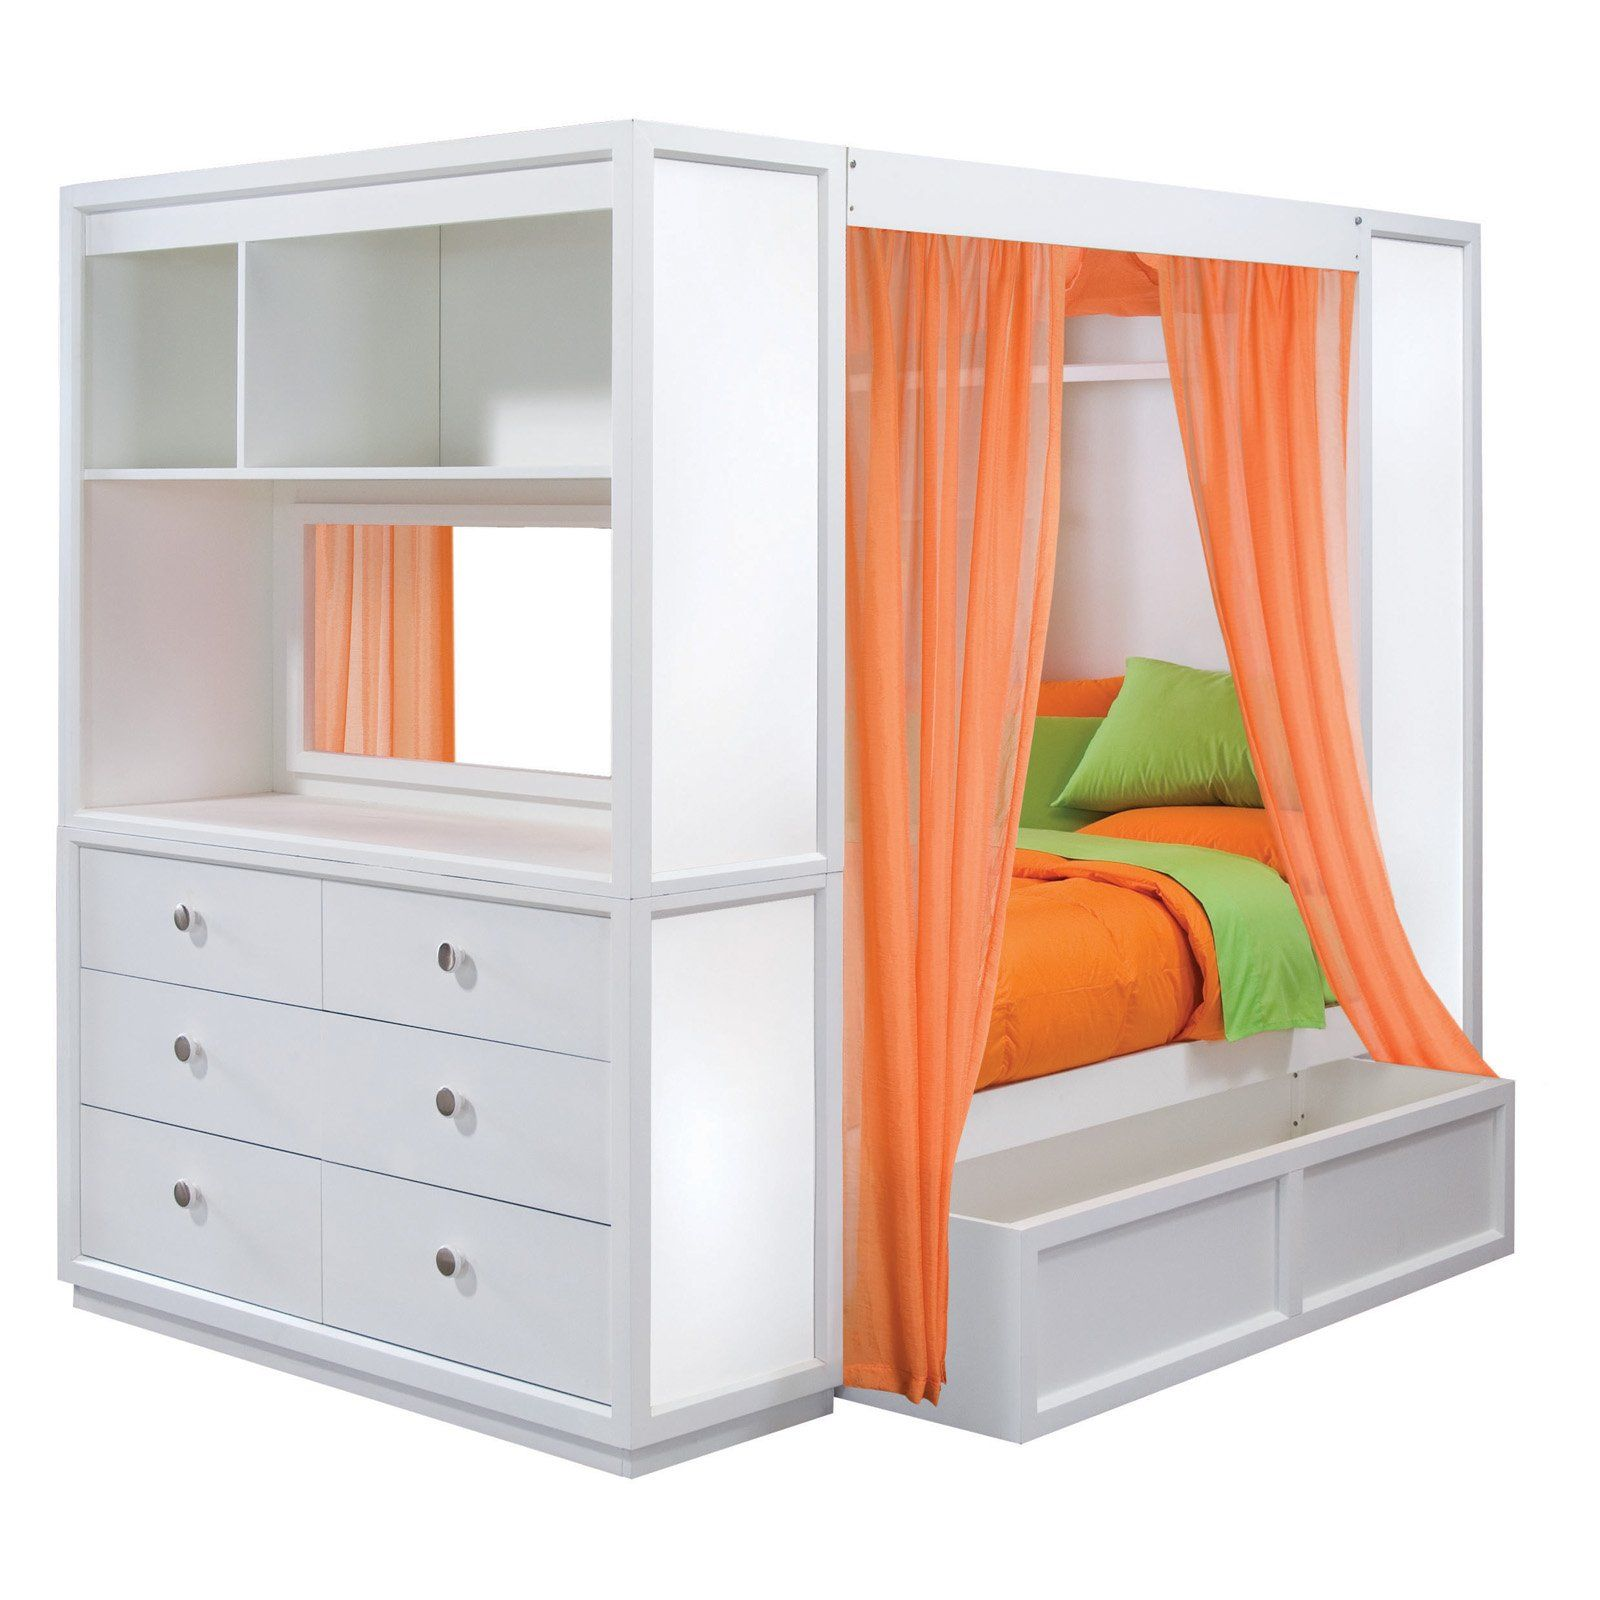 Great Way To Have A Canopy Bed With Extra Storage To Help Enclose It Kids Bed Furniture Remodel Bedroom Home Bedroom